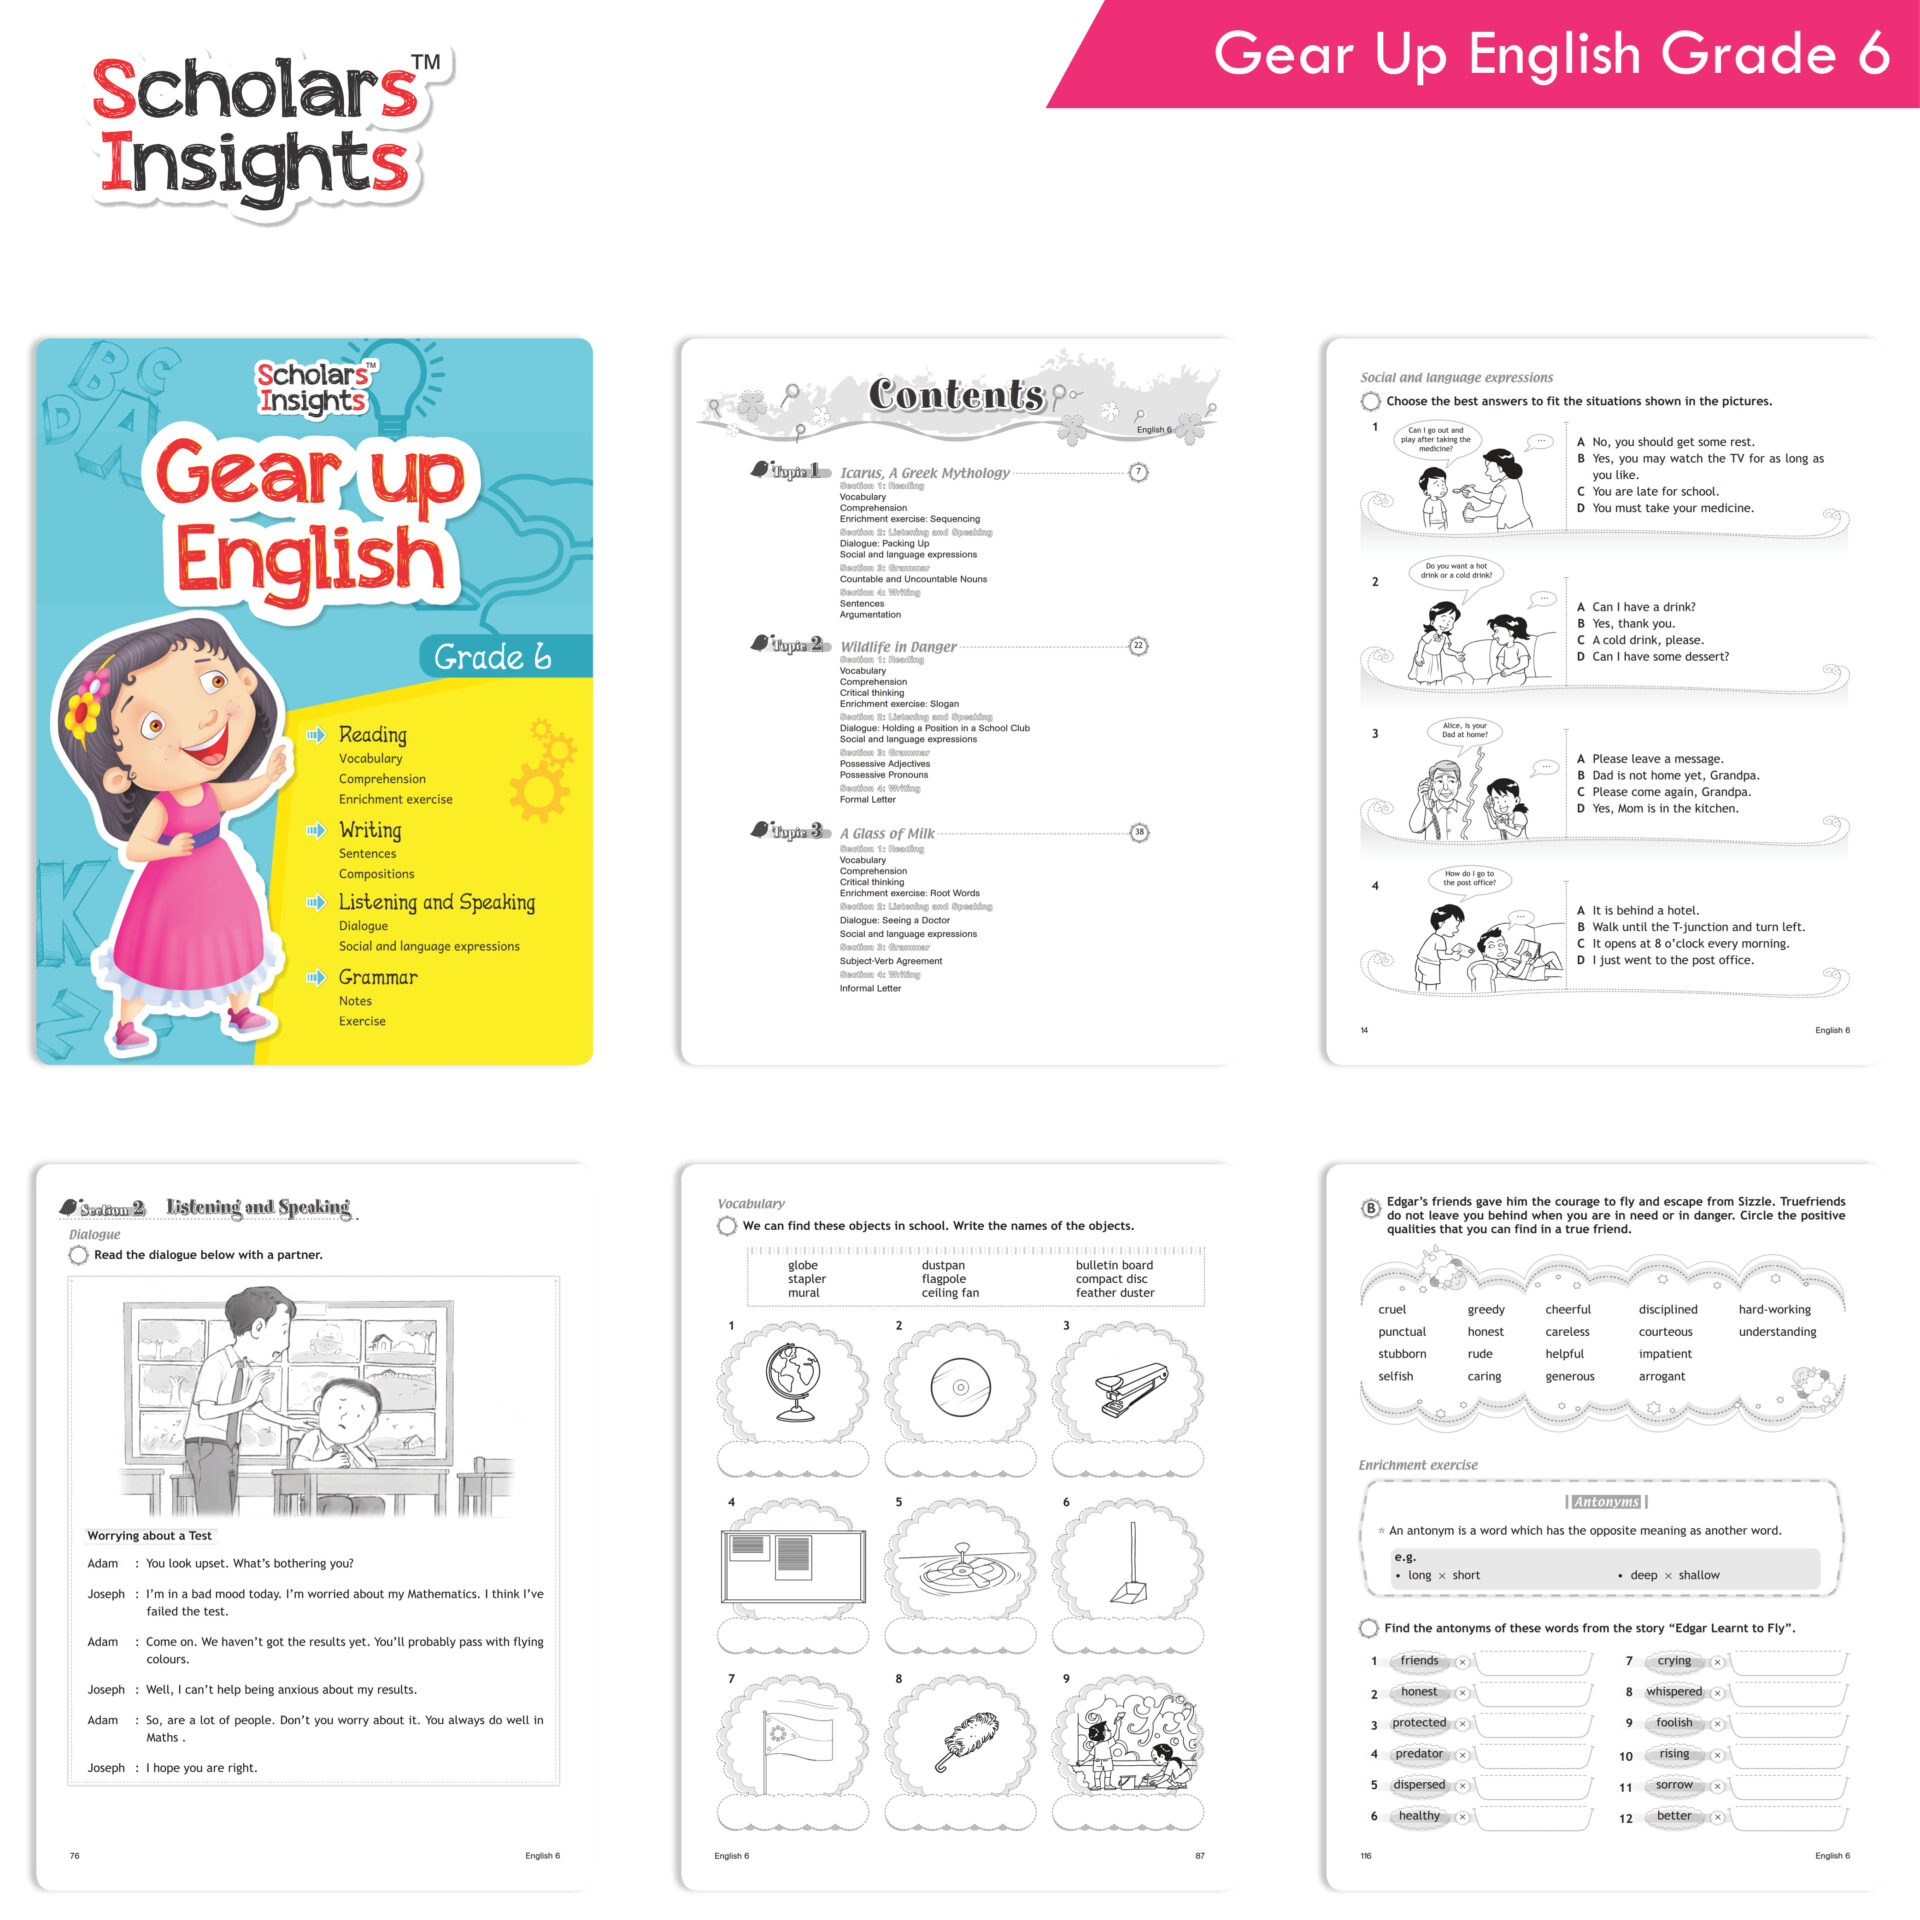 Scholars Insights Gear Up English and Maths Grade 6 Set of 2 2